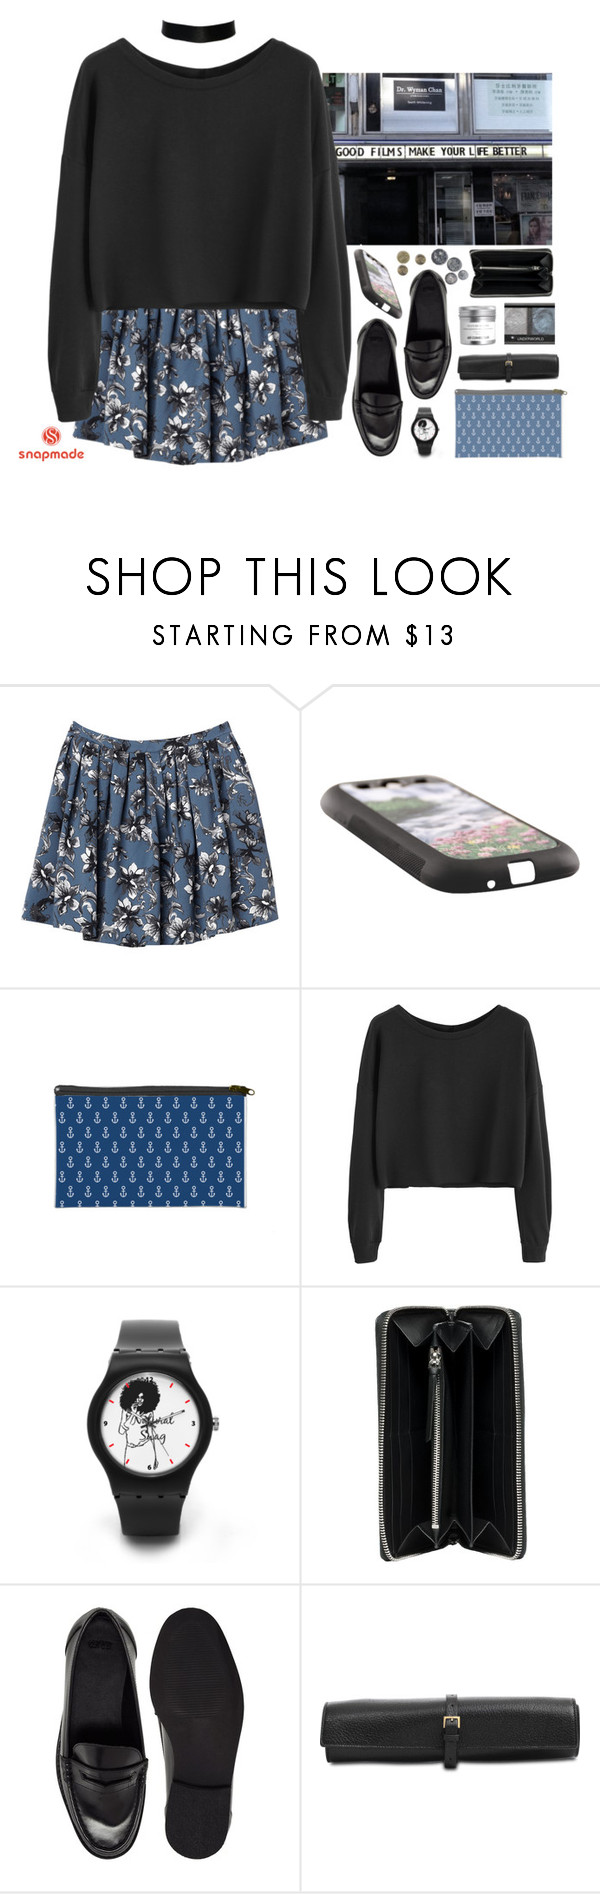 """""""Good Films"""" by ritaflagy ❤ liked on Polyvore featuring Monki, Samsung, Balenciaga, ASOS and Rochas"""